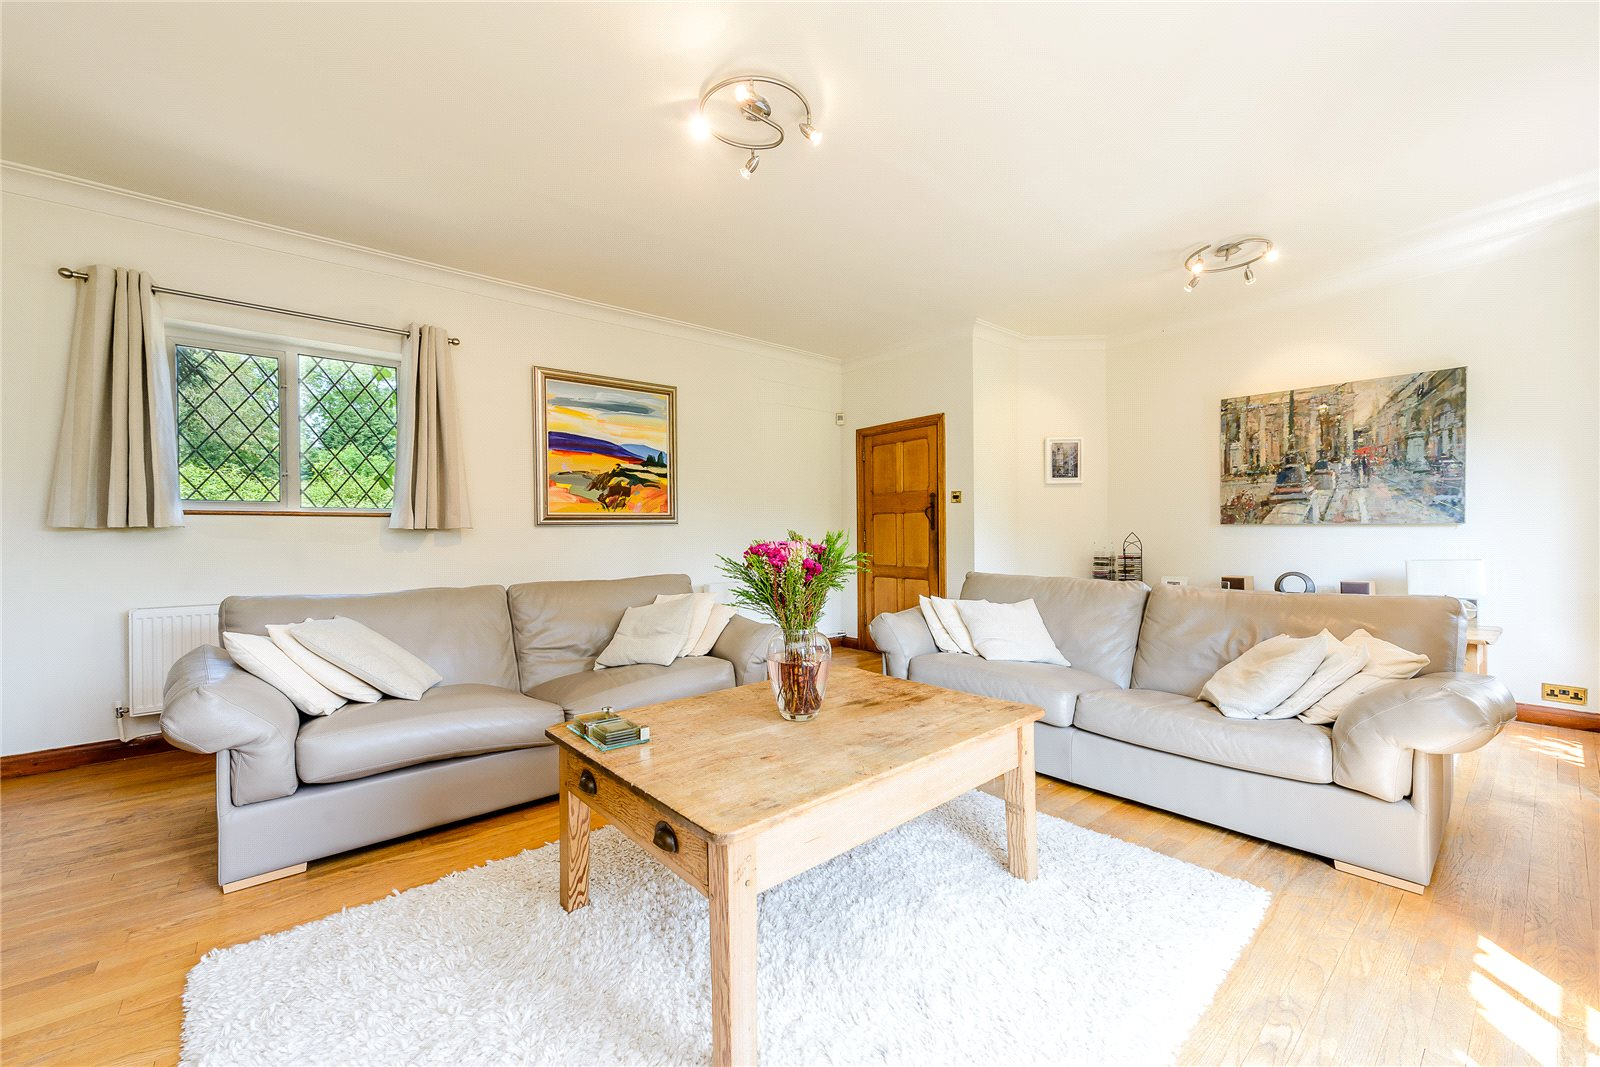 Additional photo for property listing at Fulmer Lane, Fulmer, Buckinghamshire, SL3 Fulmer, イギリス